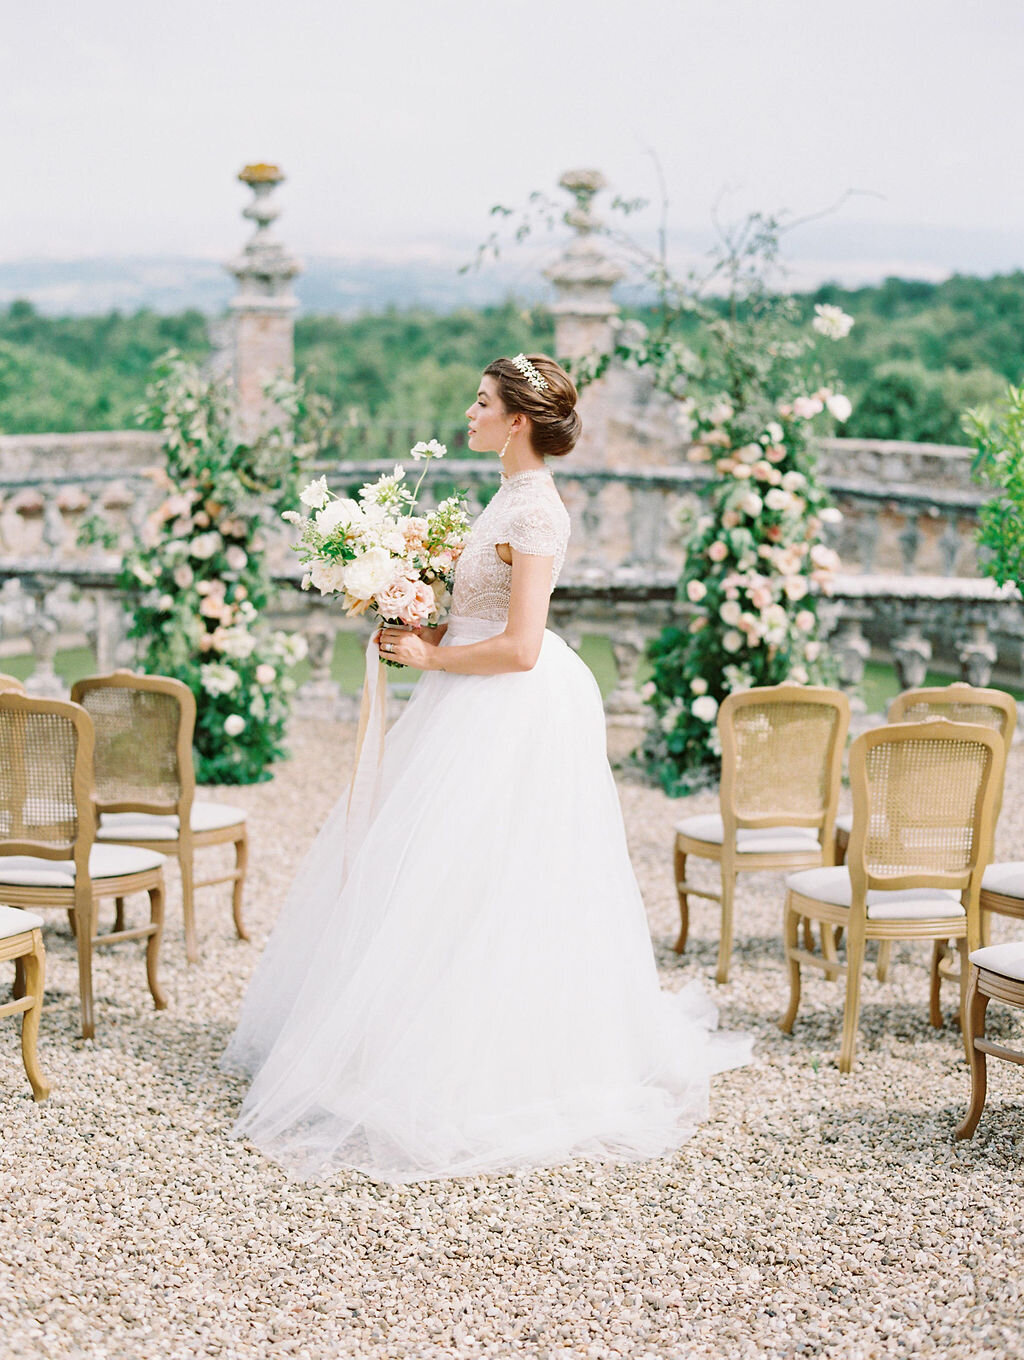 Trine_Juel_hair_and_makeupartist_wedding_Italy_Castello_Di_CelsaQuicksallPhotography_CastelloDiCelsa0240